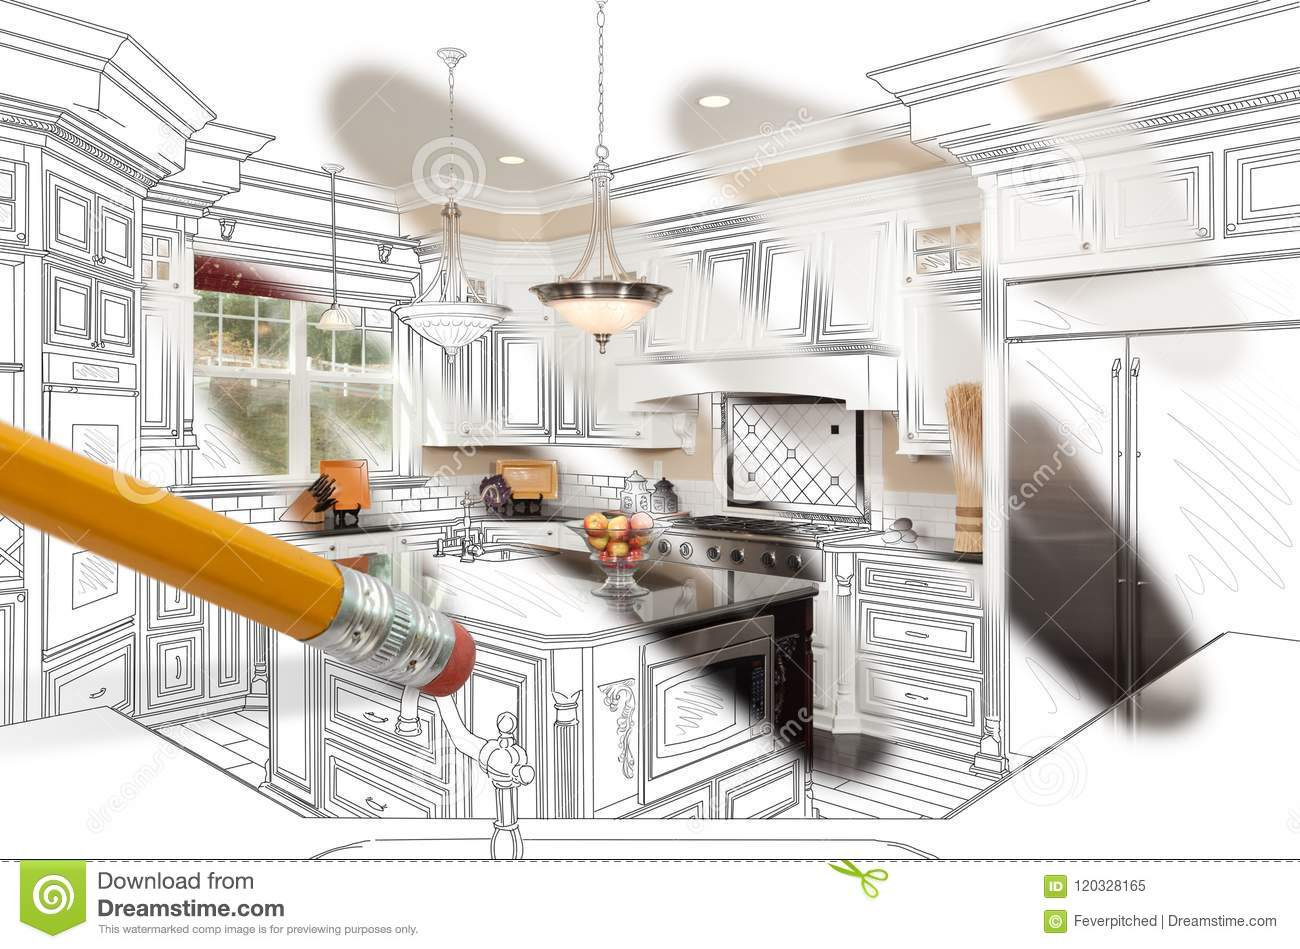 Pencil Erasing Drawing To Reveal Finished Custom Kitchen Design